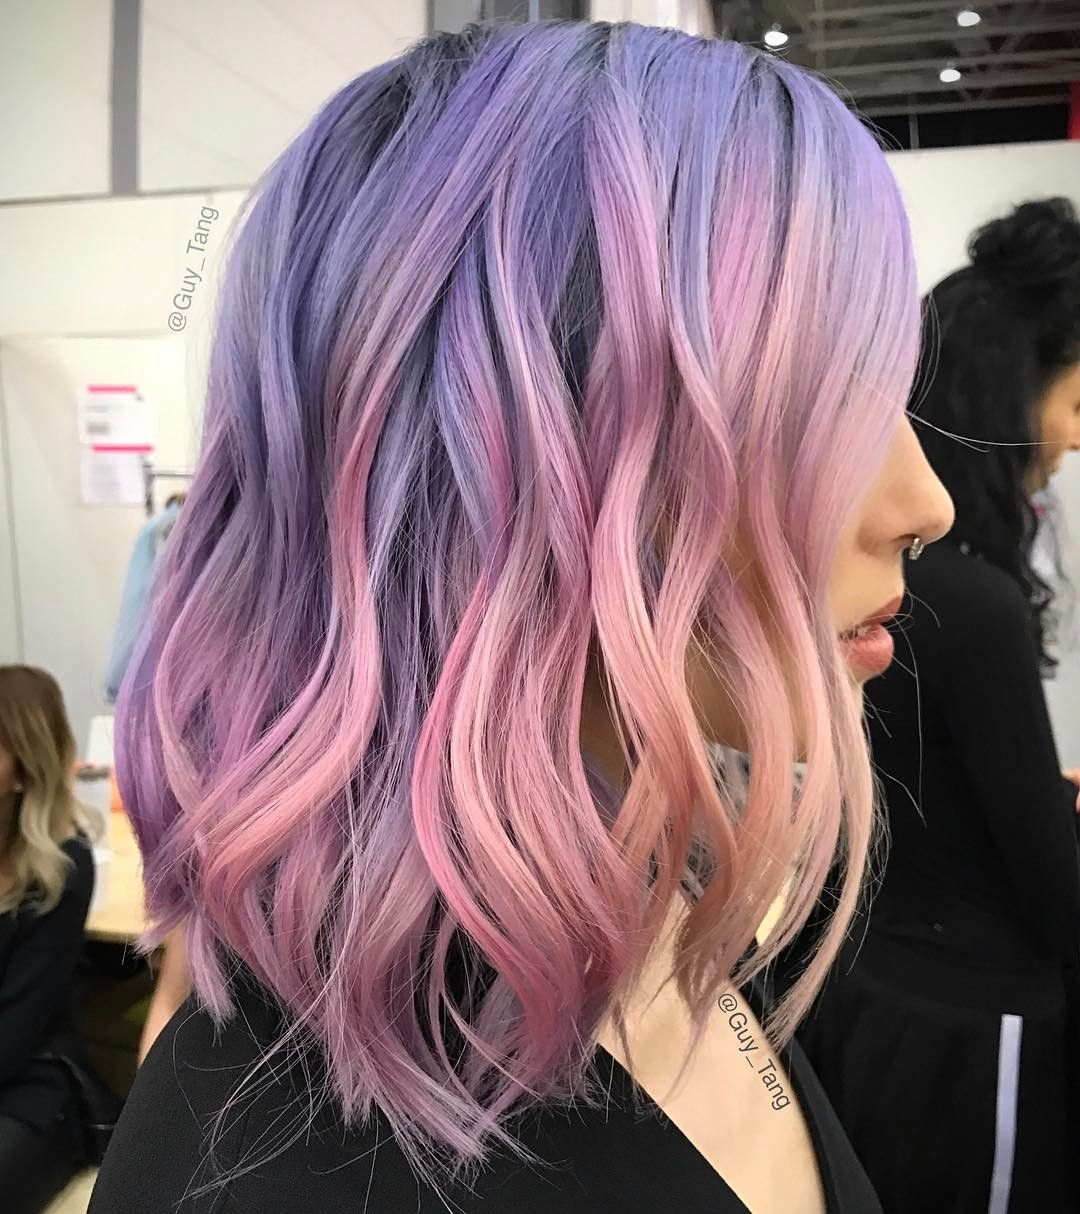 Purplepink Hair Colors Pinterest Hair Dyed Hair And Hair Styles